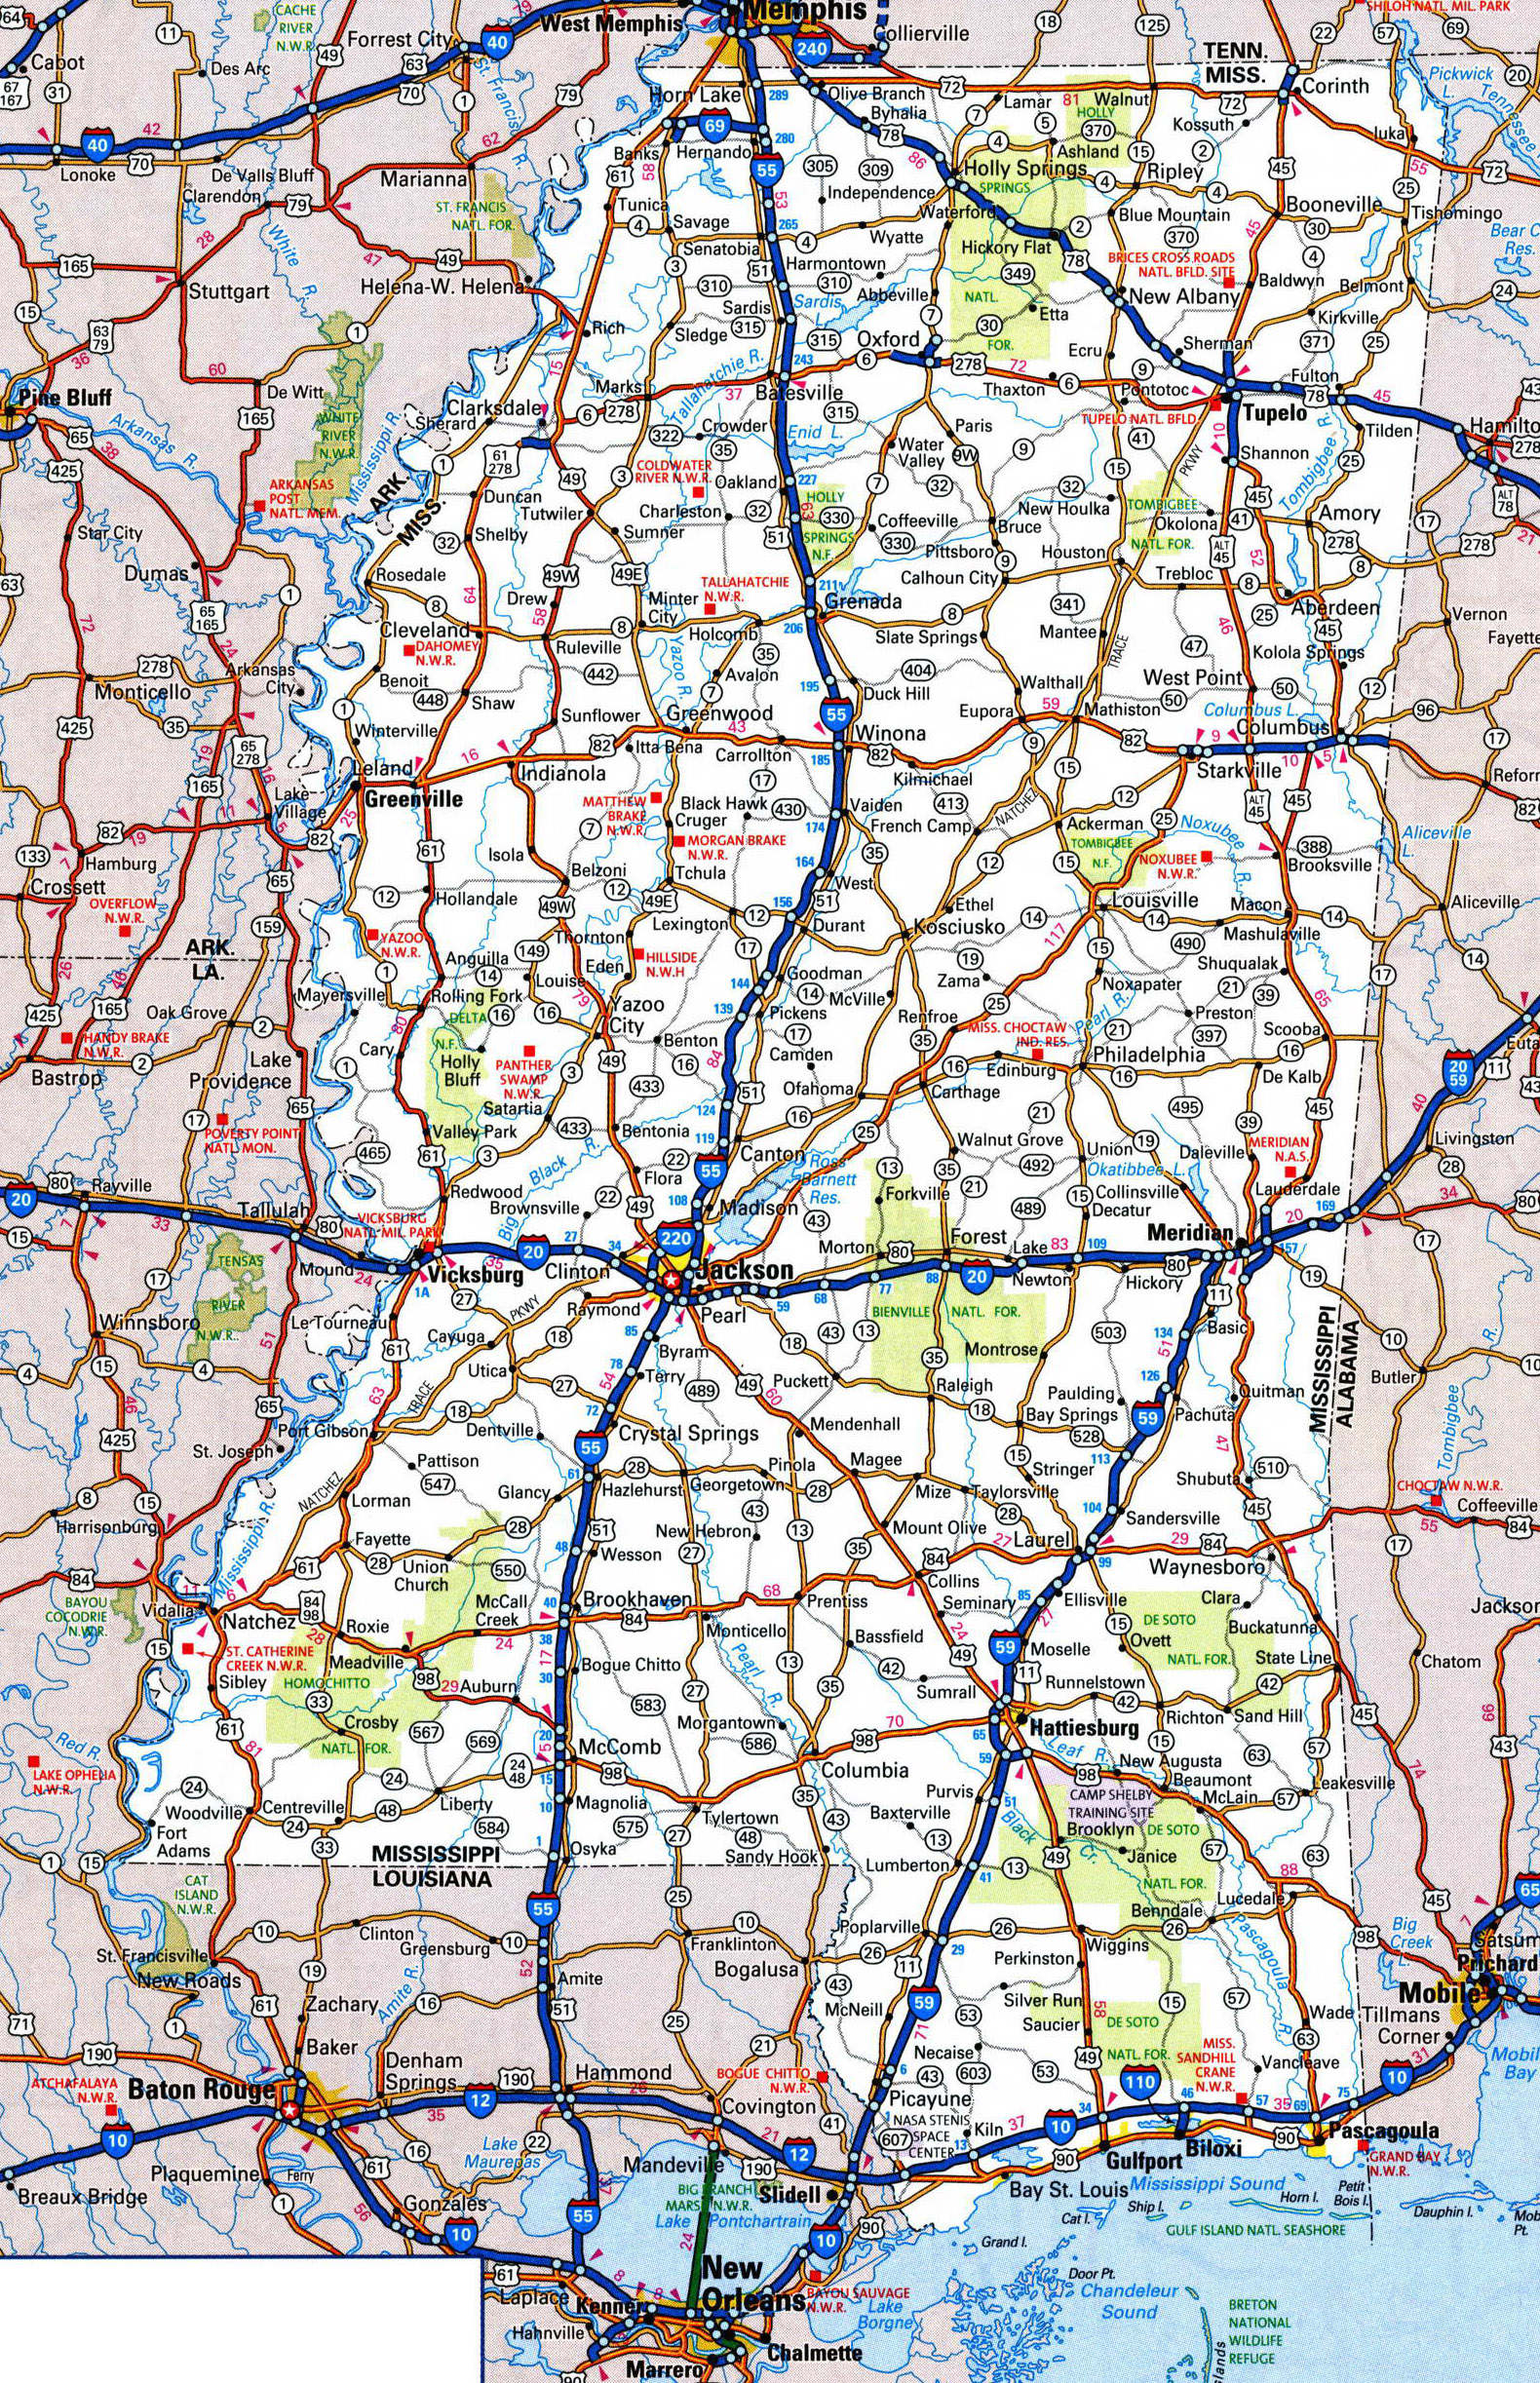 Large Detailed Roads And Highways Map Of Mississippi State With - Detailed usa map with states and cities